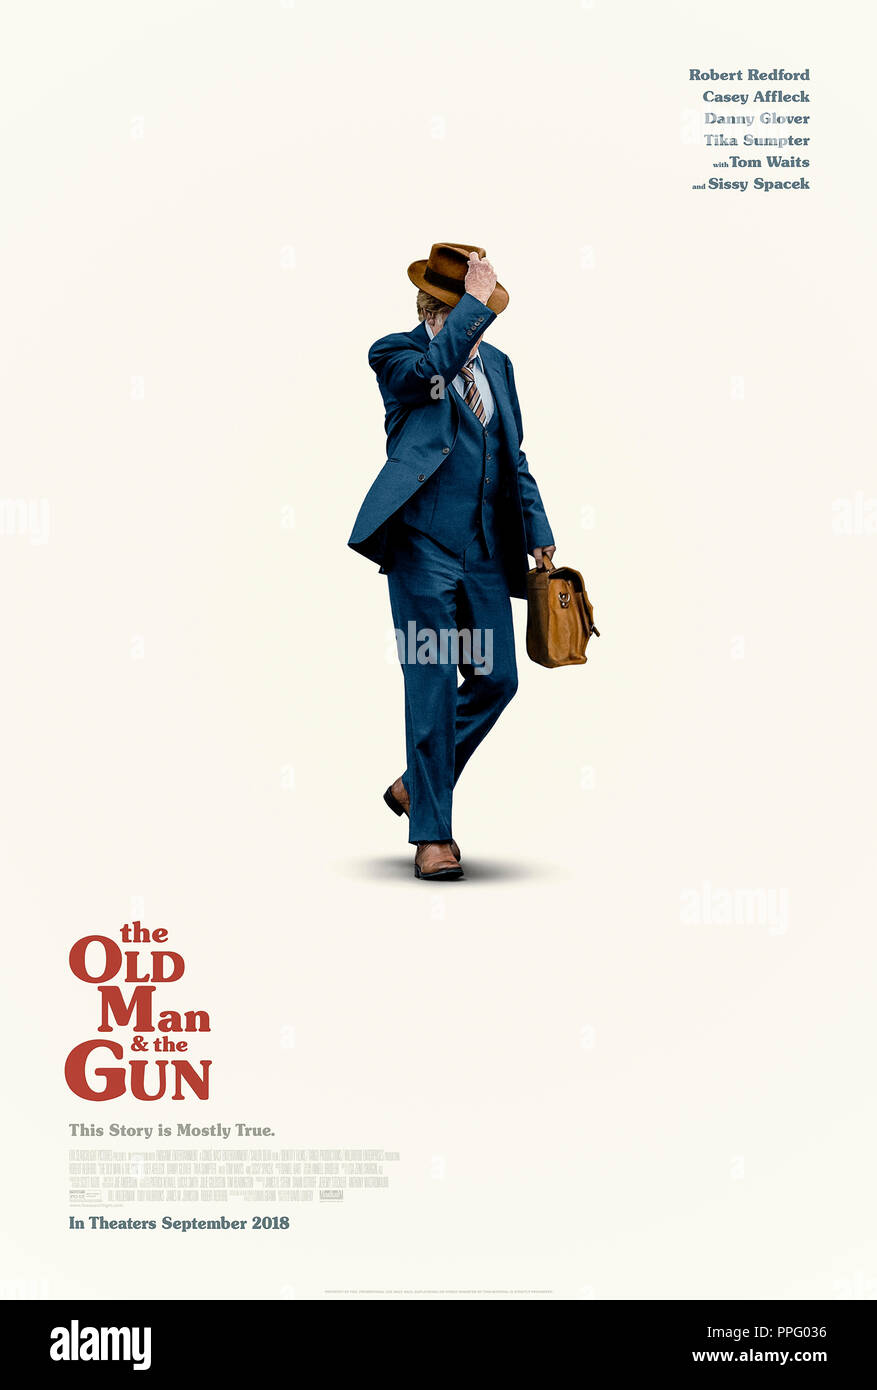 The Old Man & the Gun (2018) directed by David Lowery and starring Robert Redford, Casey Affleck, Sissy Spacek and Danny Glover. Based on the true story of Forrest Silva 'Woody' Tucker escape from San Quentin State Prison. - Stock Image